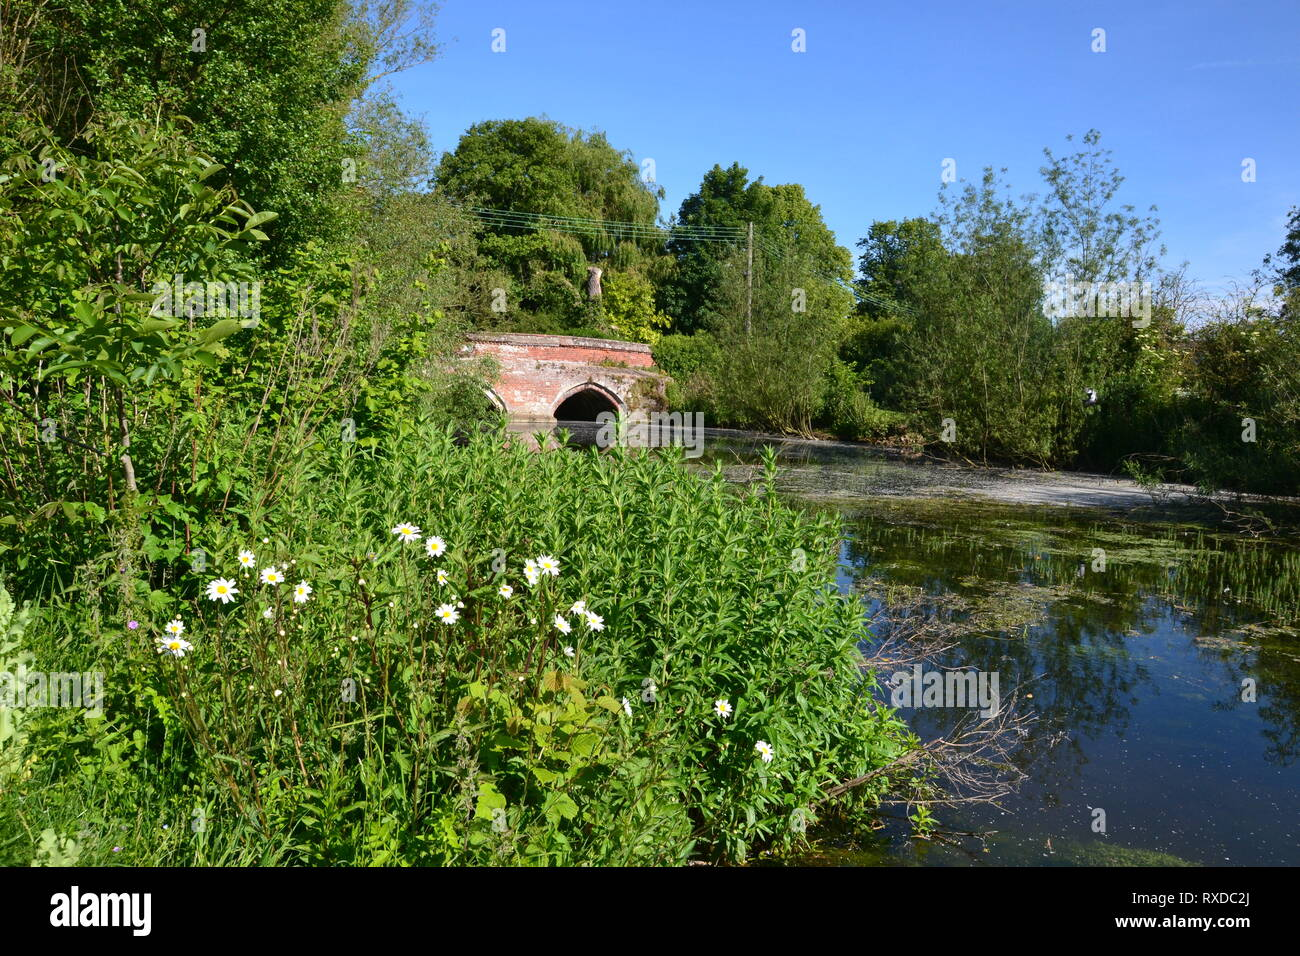 Bridge over the River Box Walk at Polstead, Suffolk, UK - Stock Image